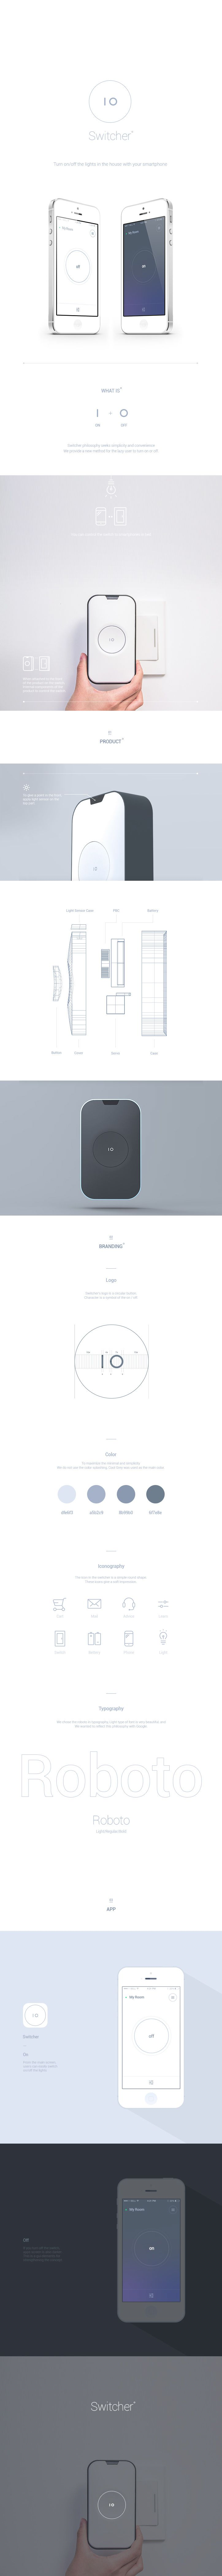 Switcher_concept on Behance